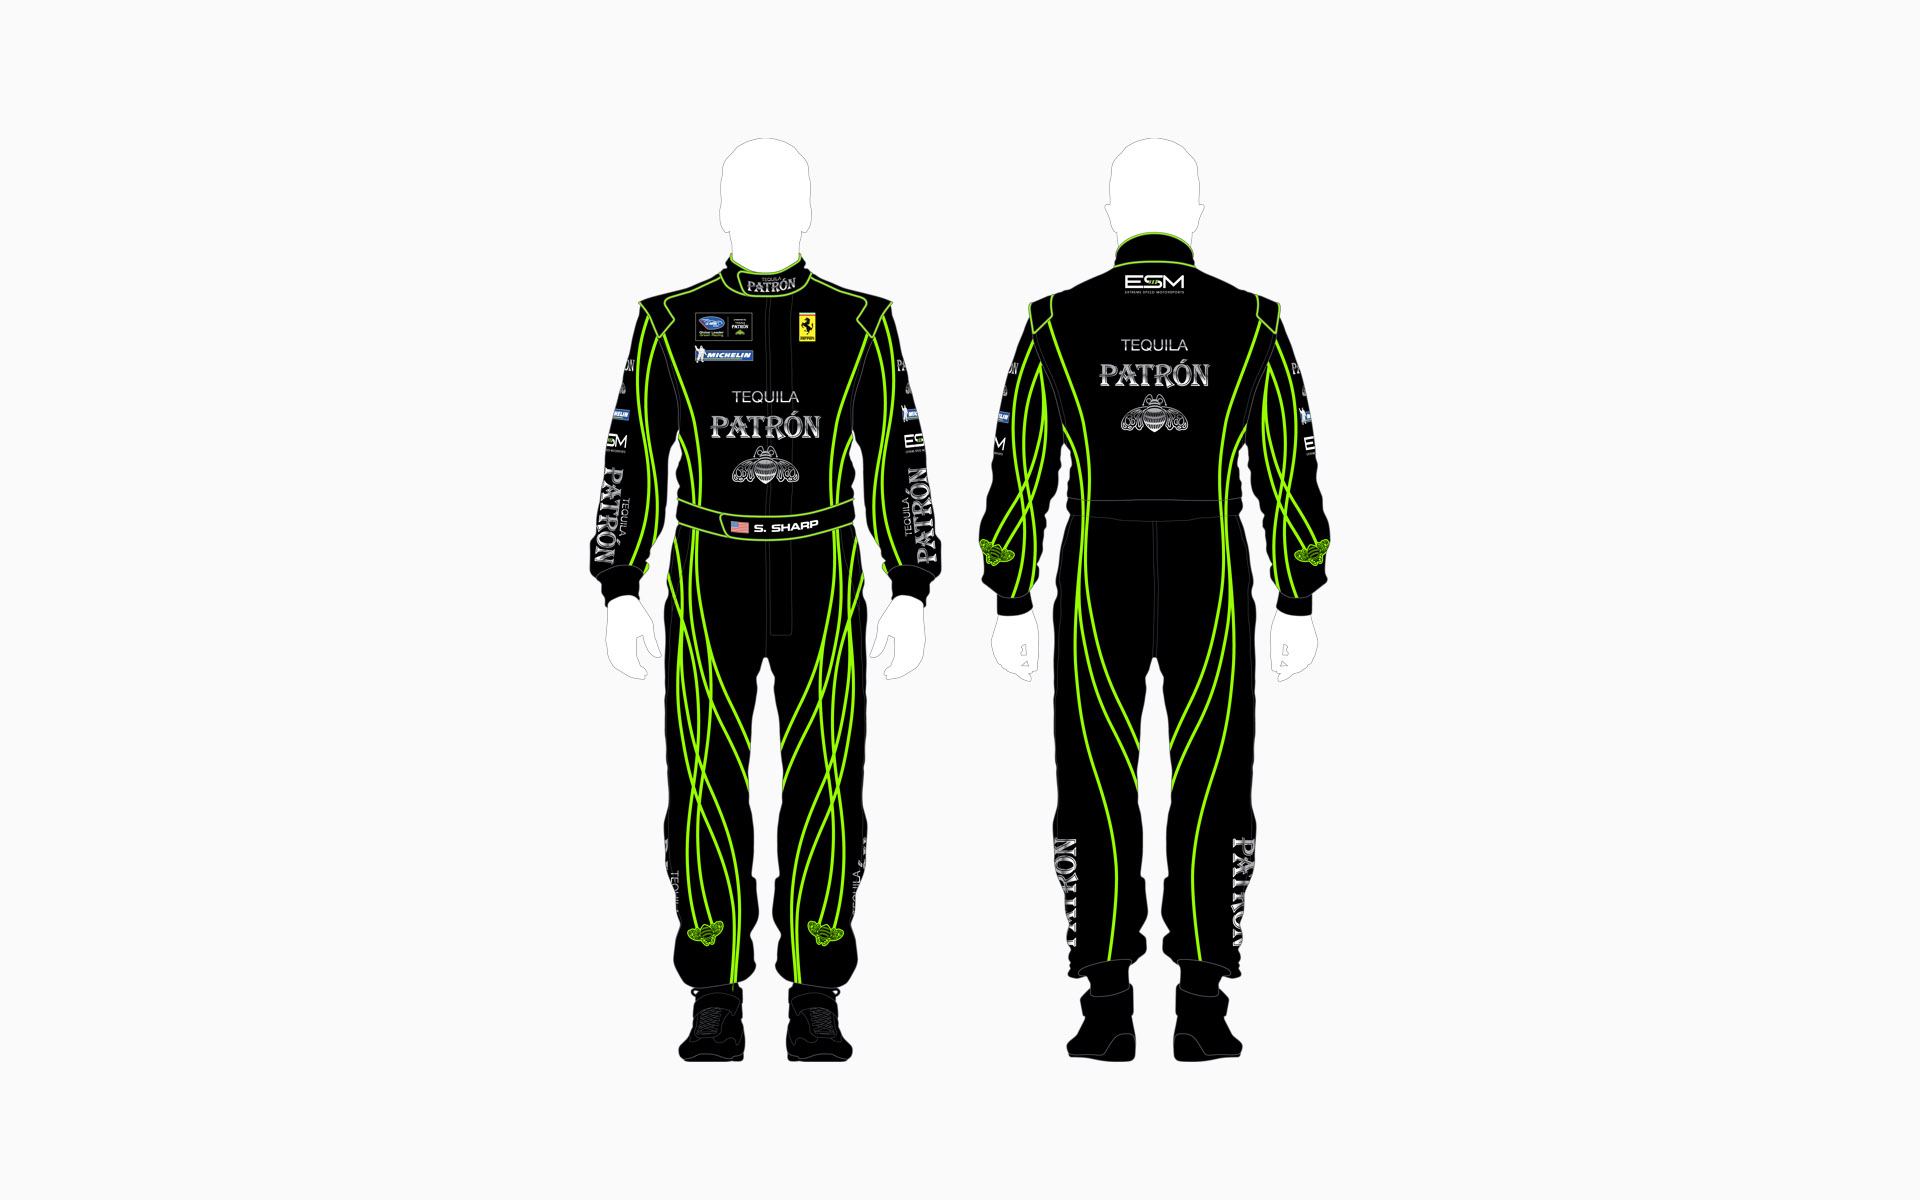 2011 Extreme Speed Motorsports Pátron Crew Shirt and Firesuit